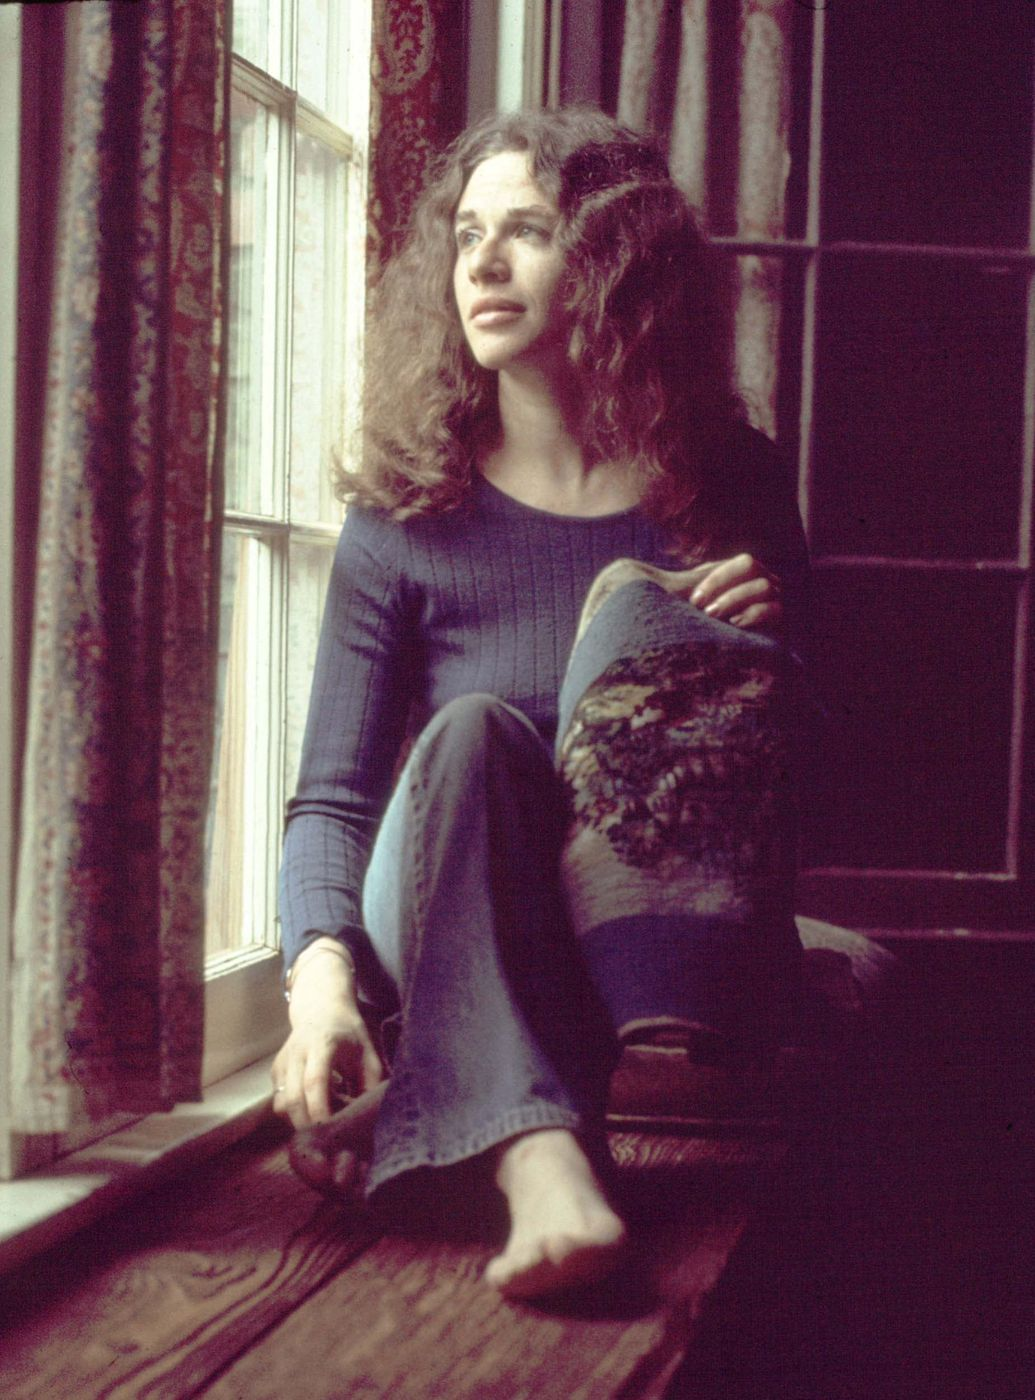 234 Carole King Up On The Roof Live 1971 Jeff